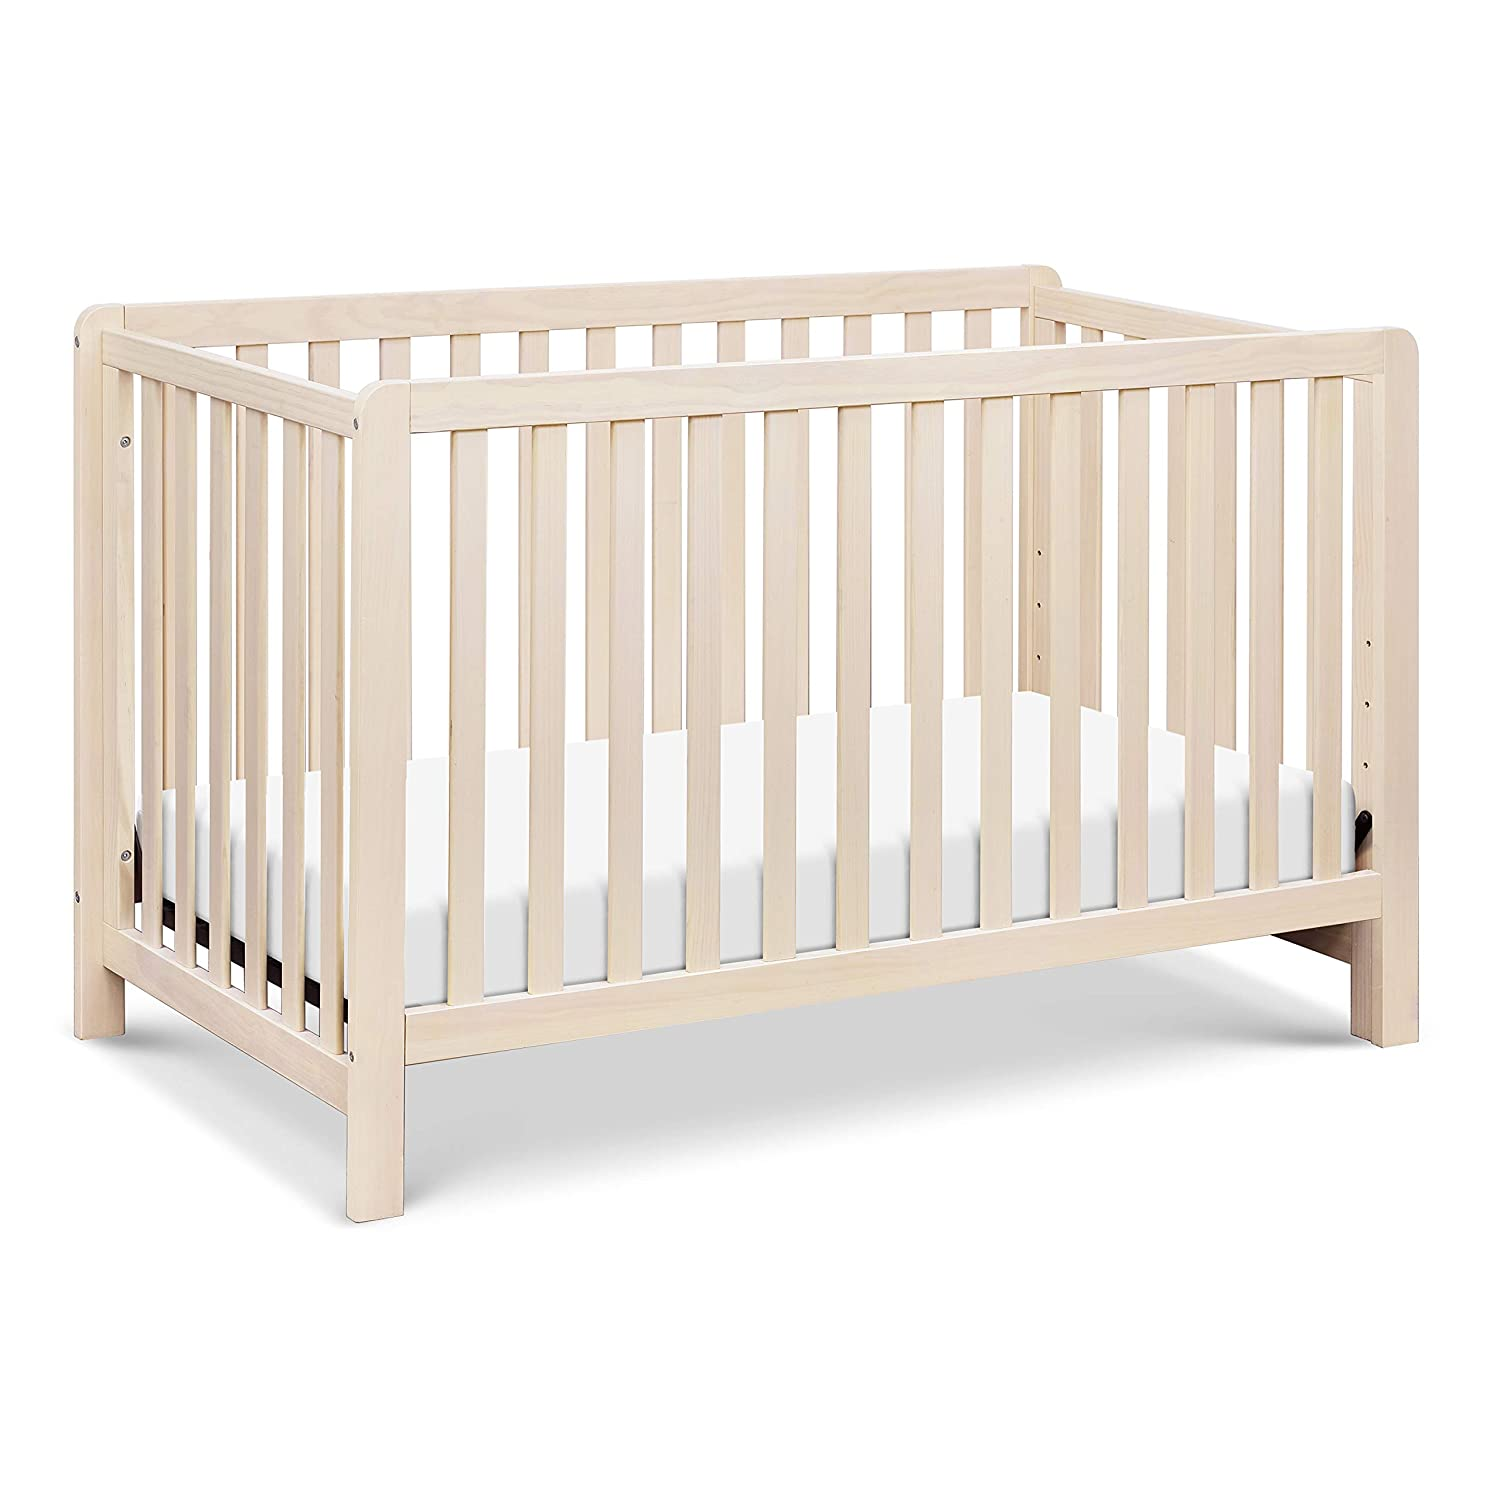 Carter s by DaVinci Colby 4-in-1 Low-Profile Convertible Crib in Washed Natural Greenguard Gold Certified